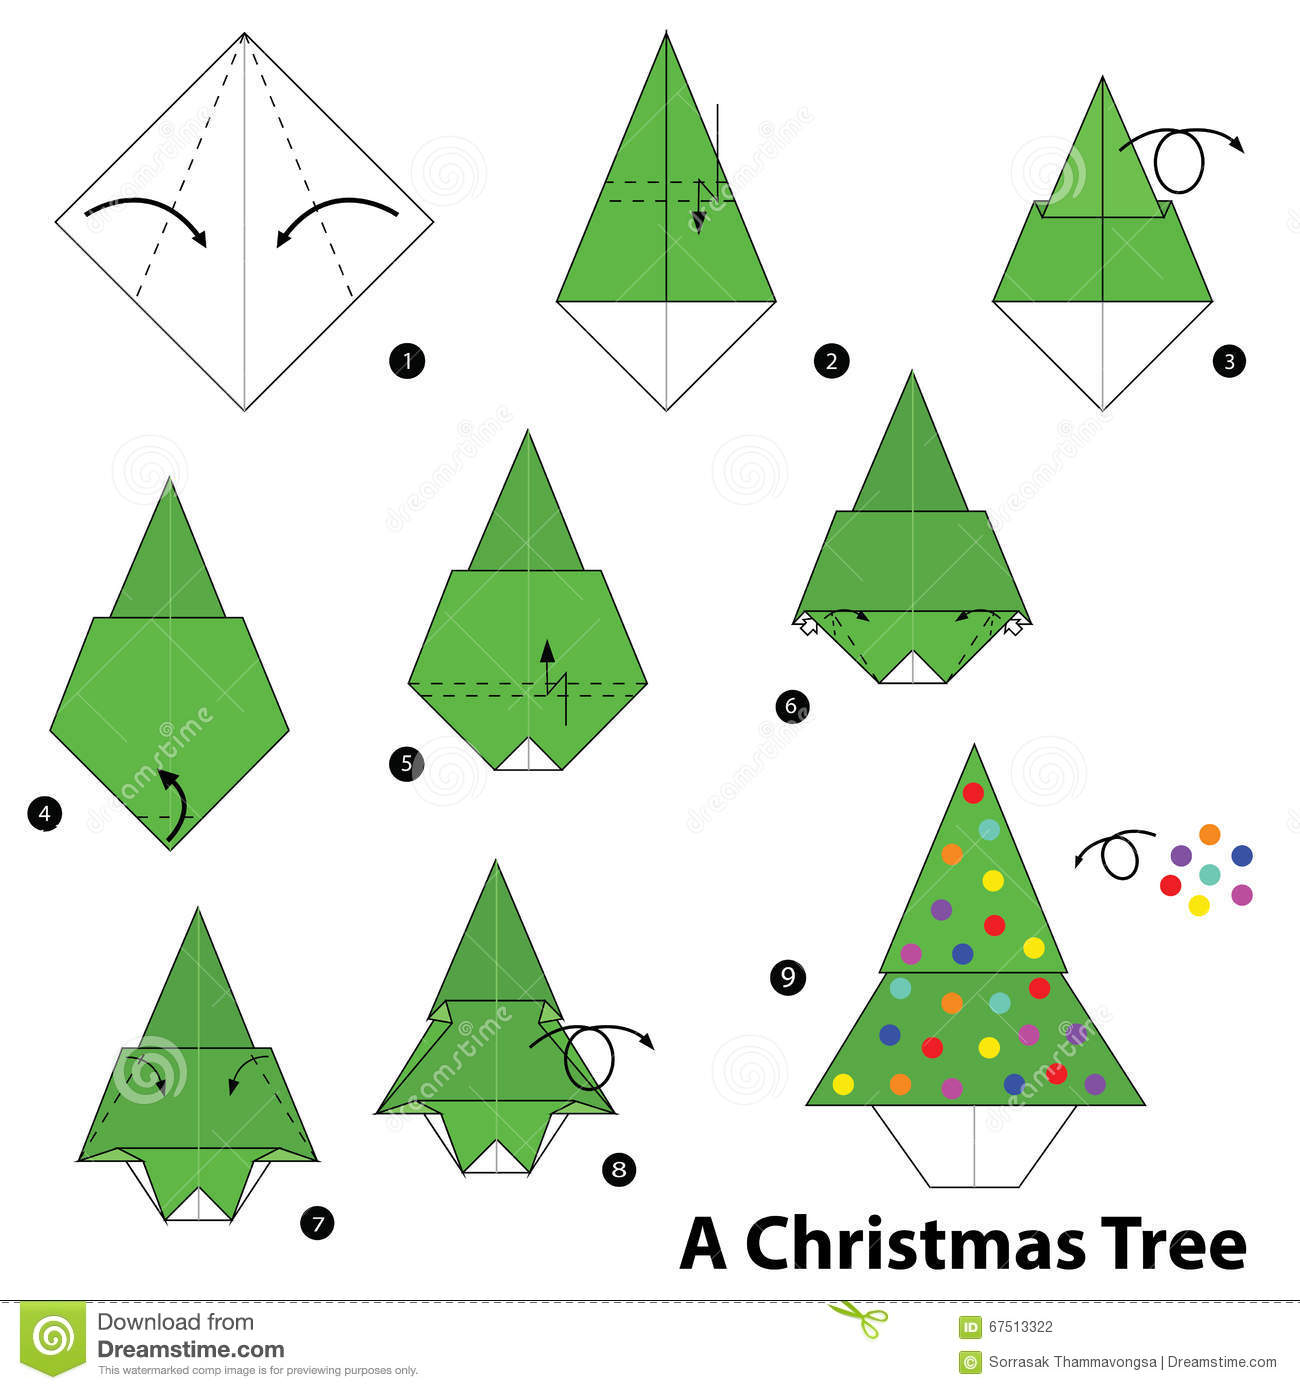 Step By Step Instructions How To Make Origami A Christmas ... - photo#19